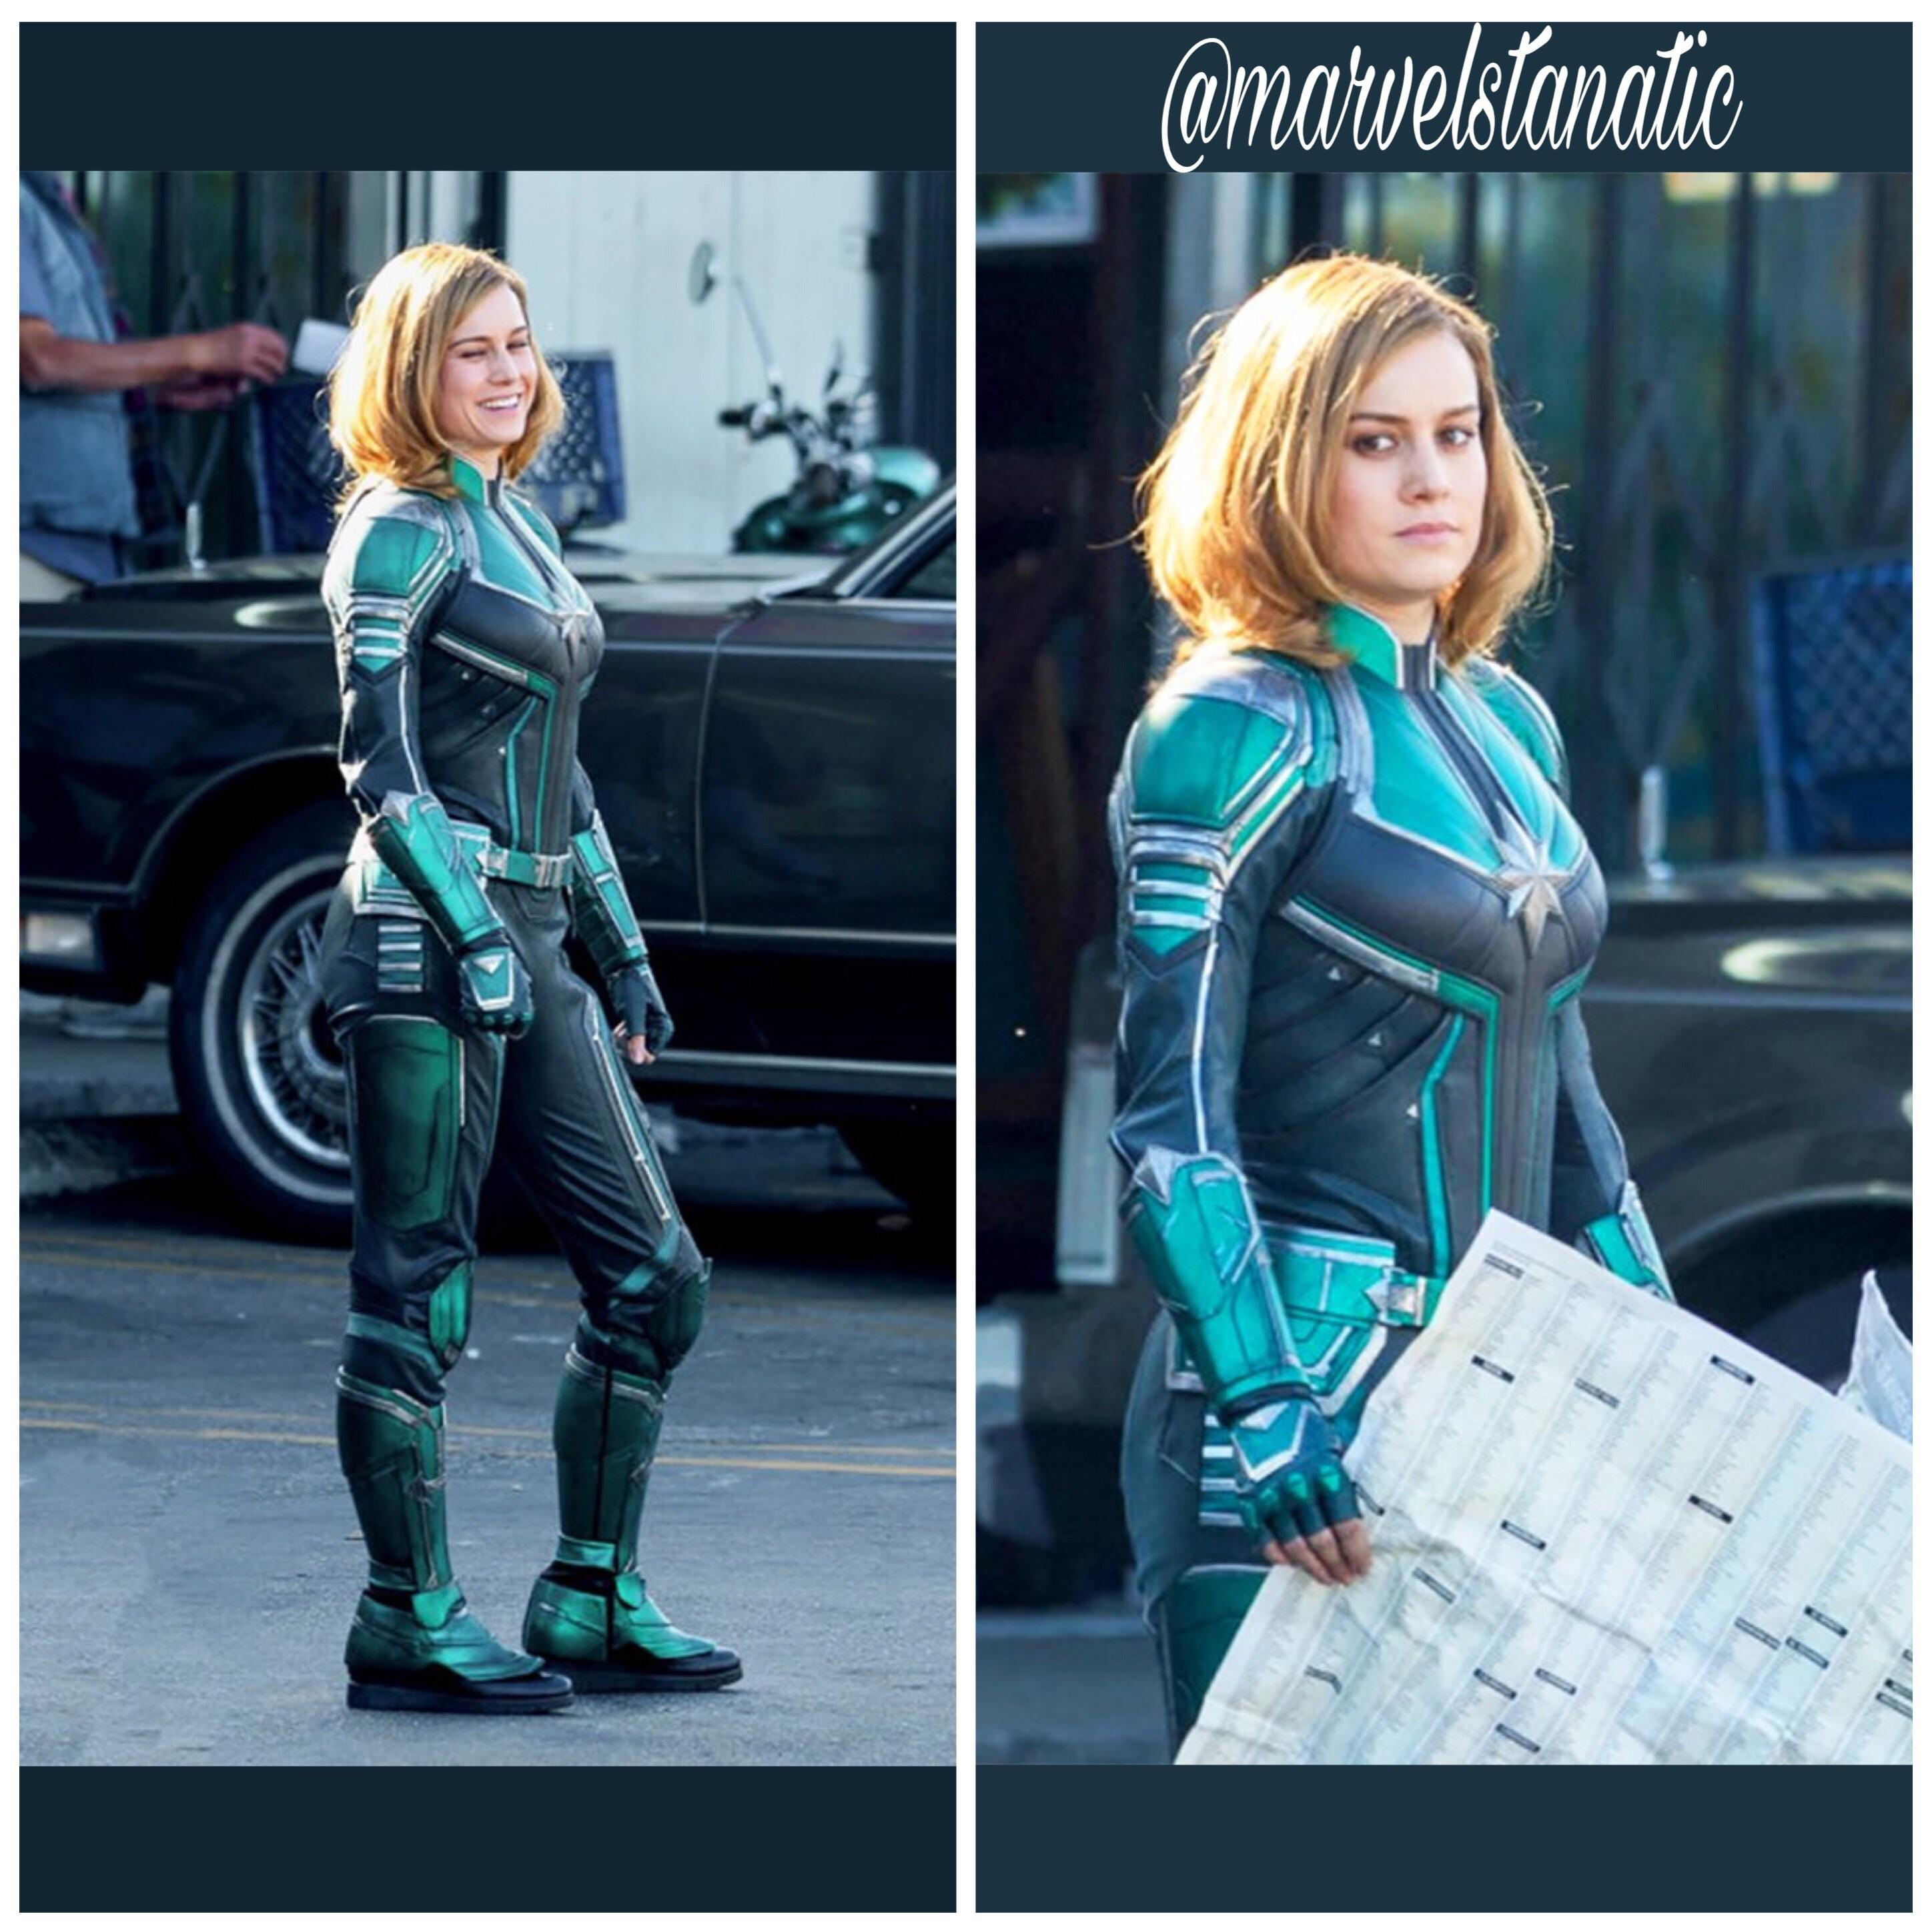 first look at brie larson suited up as captain marvel! : marvel